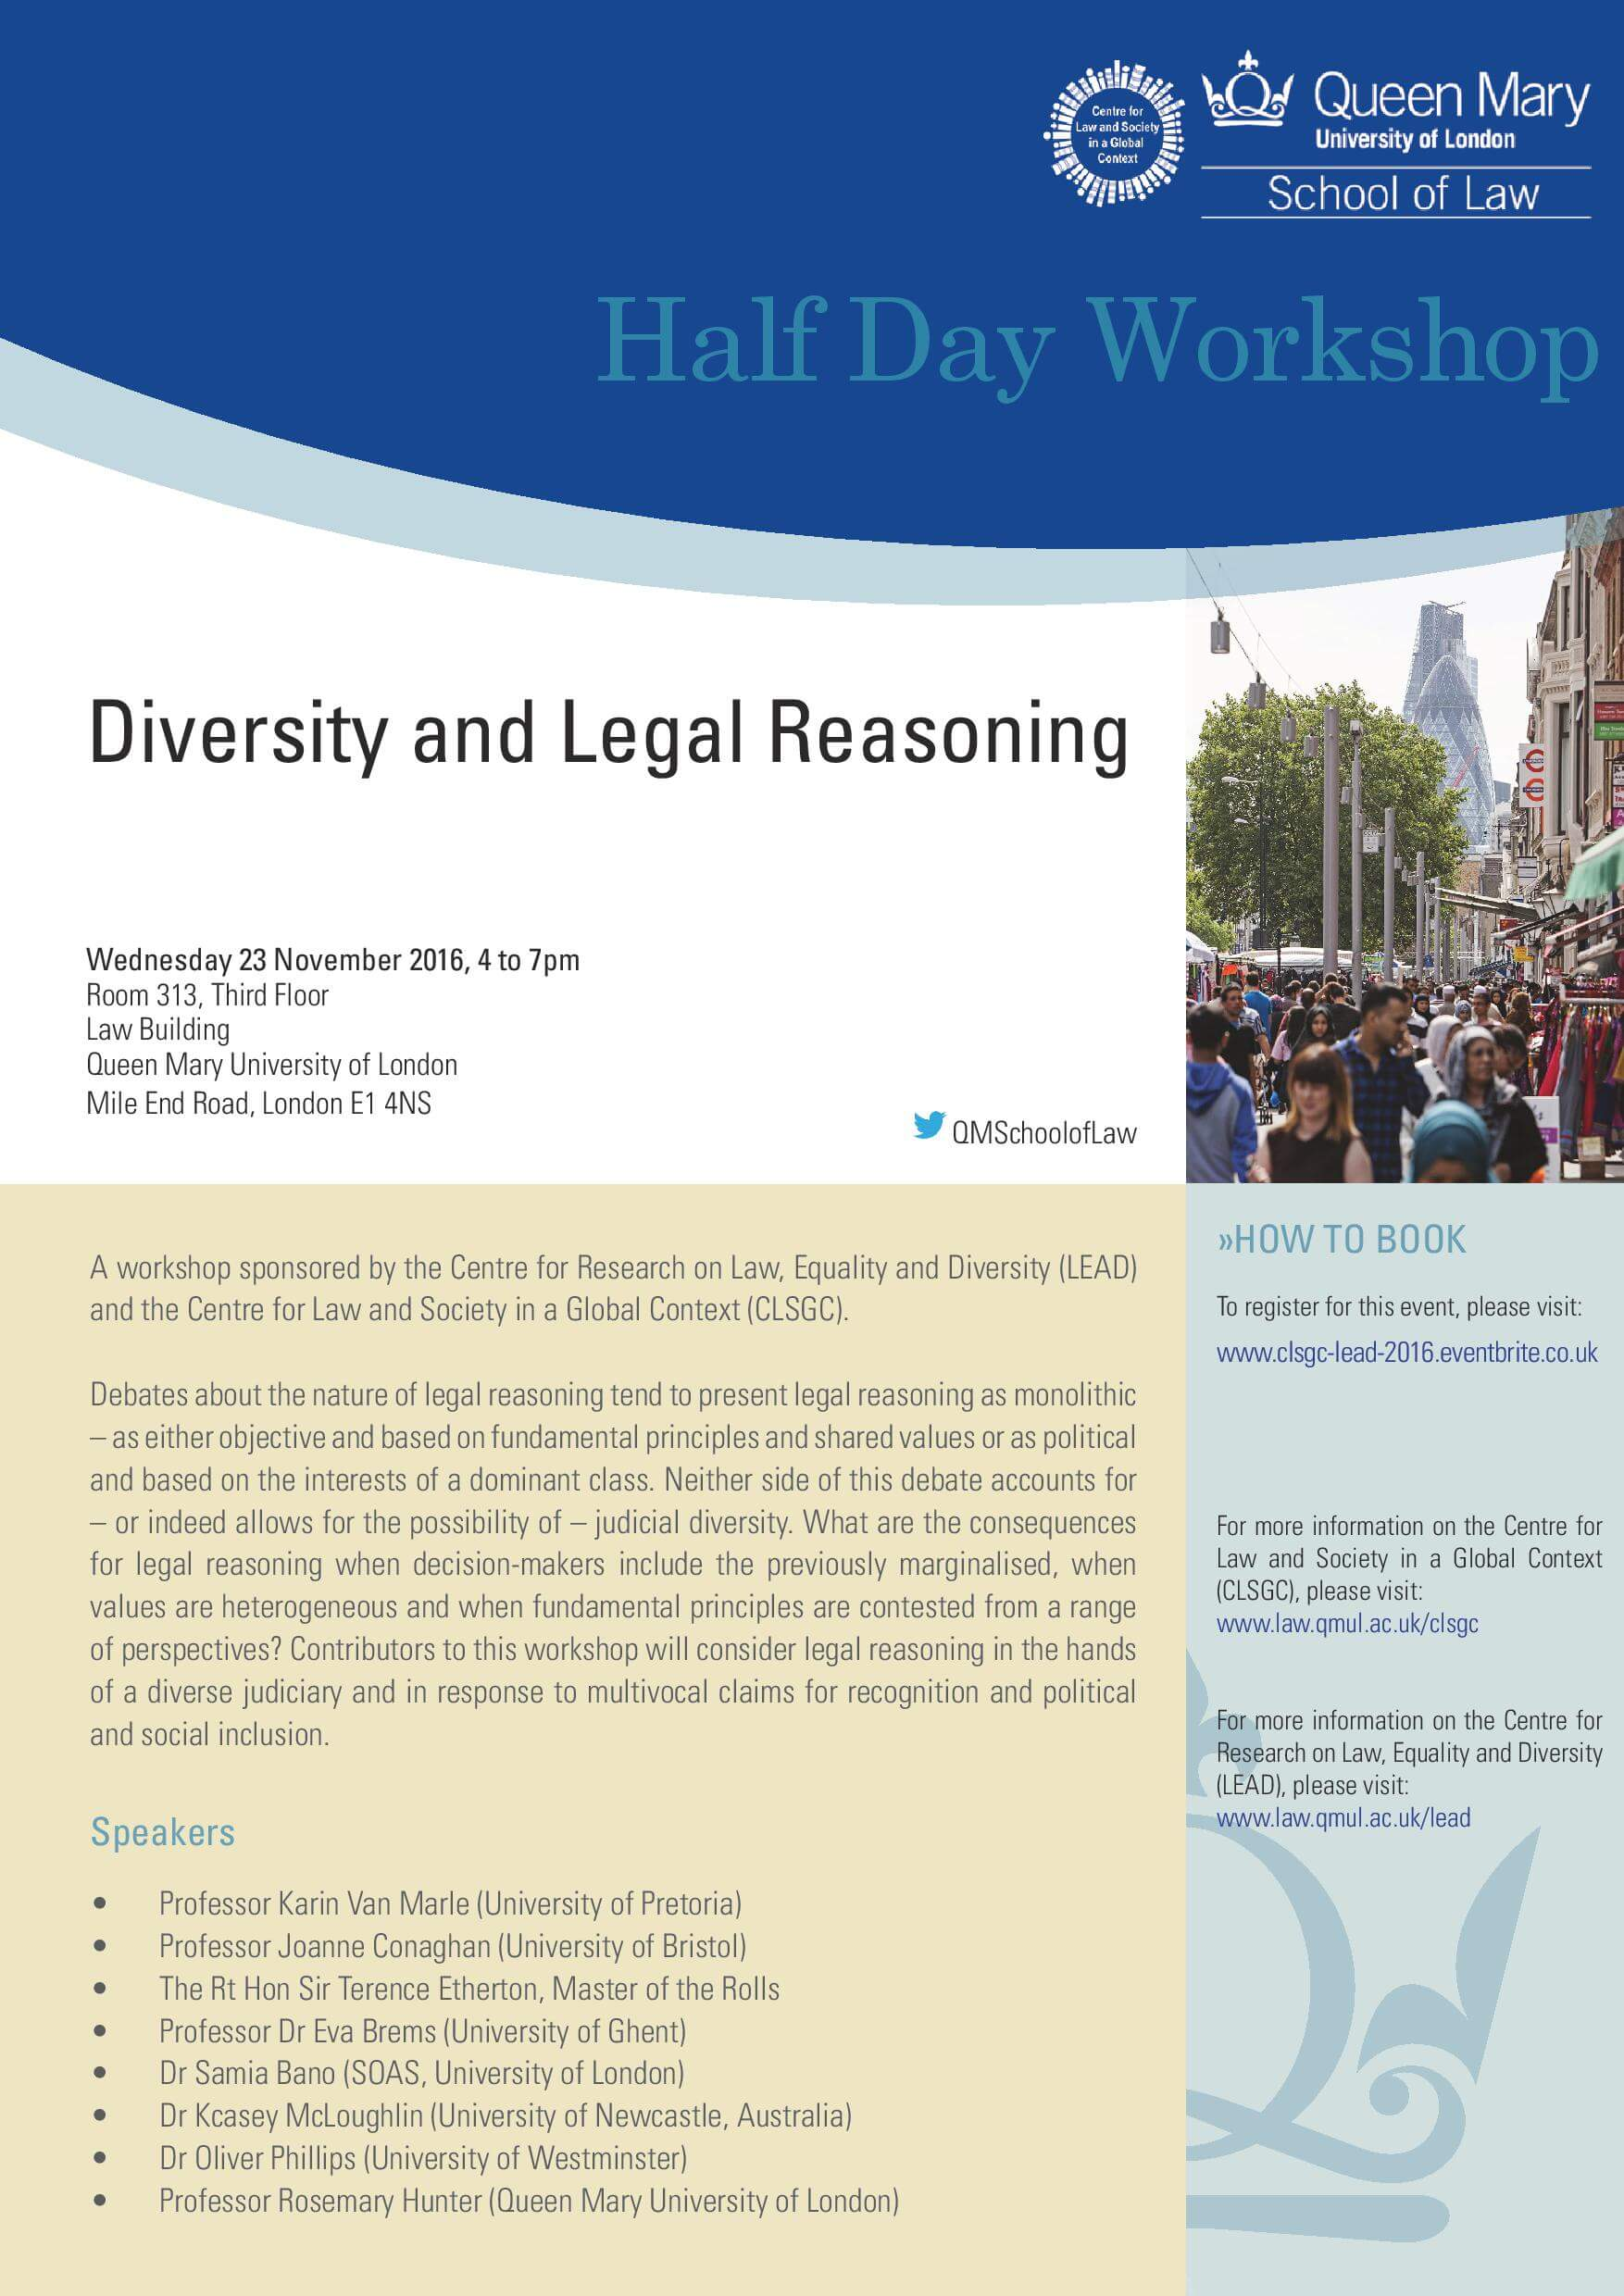 Queen Mary University-Half Day Workshop on Diversity and Legal Reasoning